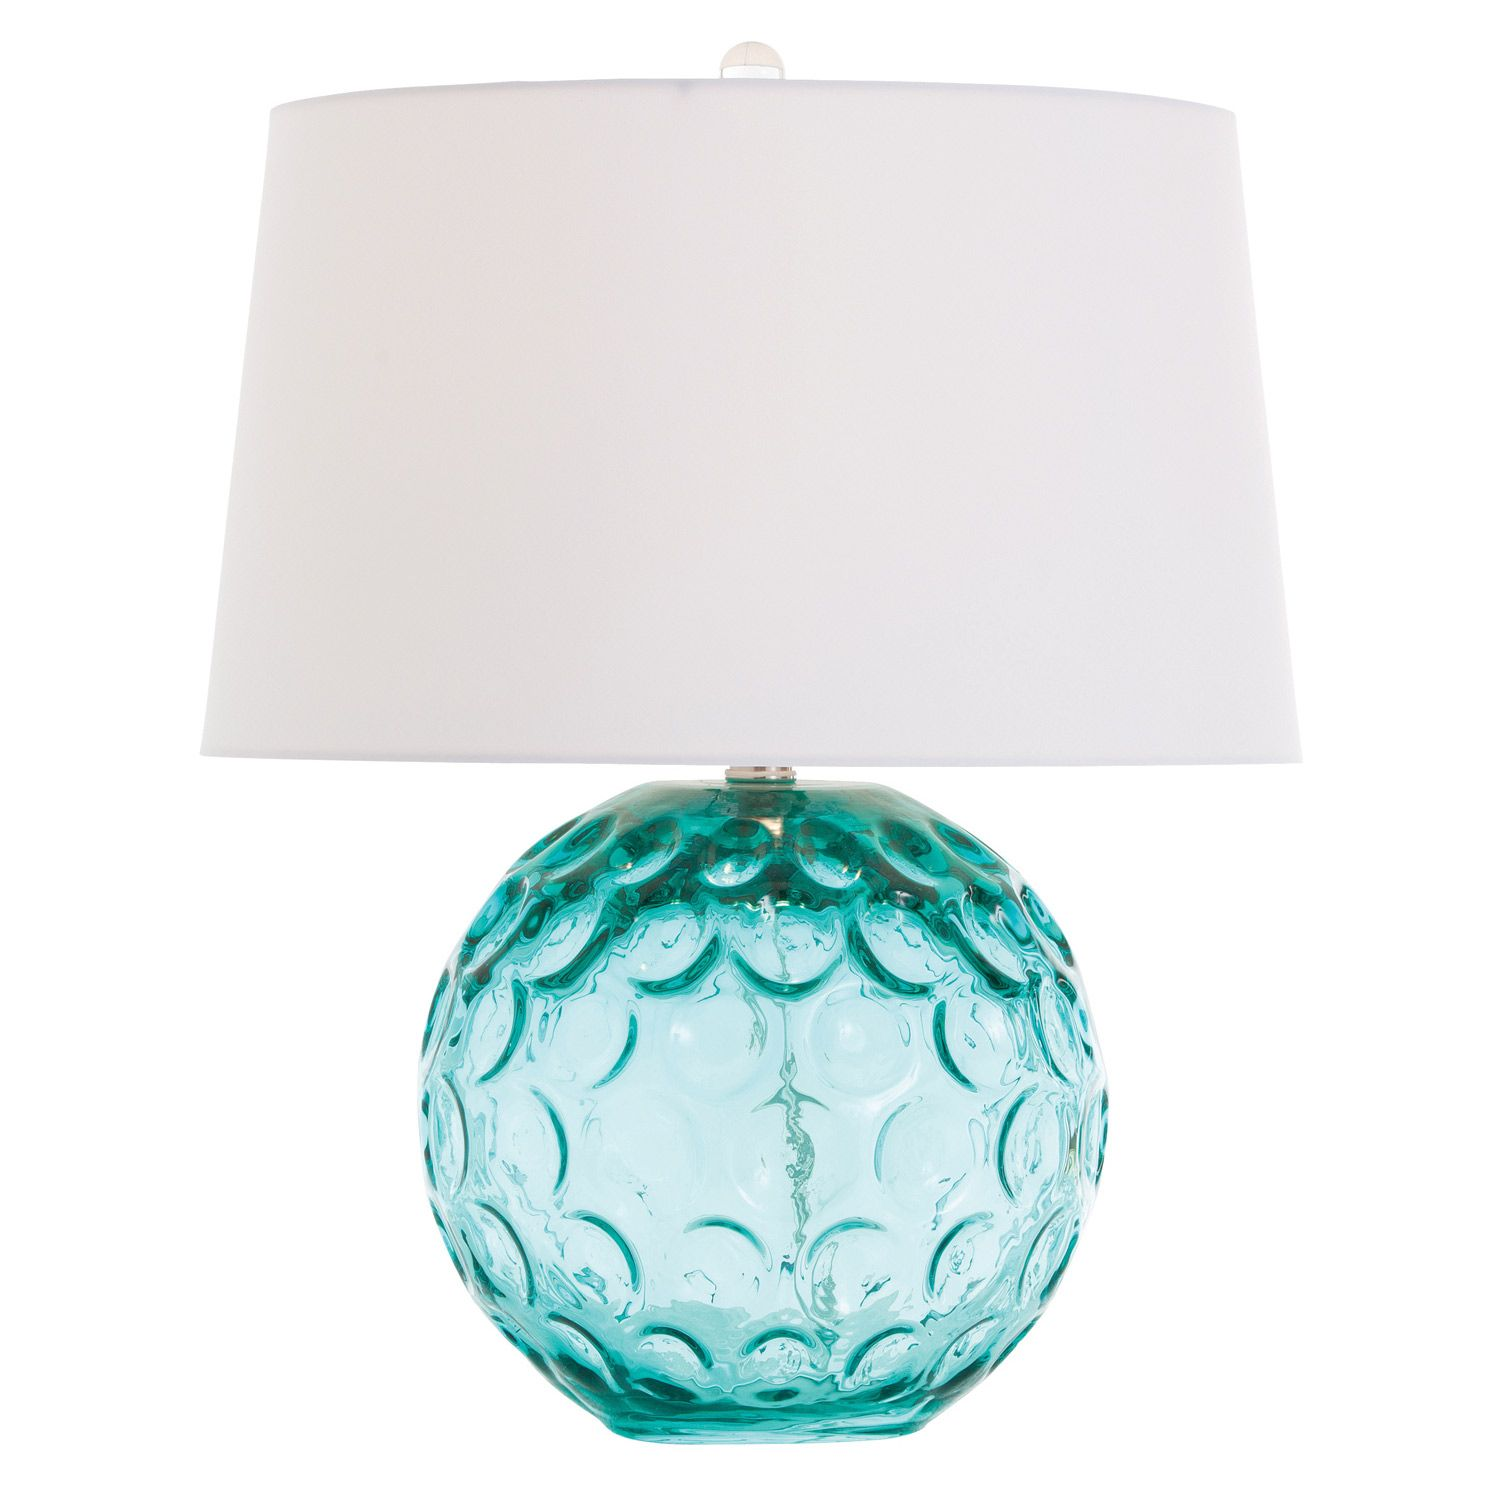 better lamps tag lamp shade aqua cheap